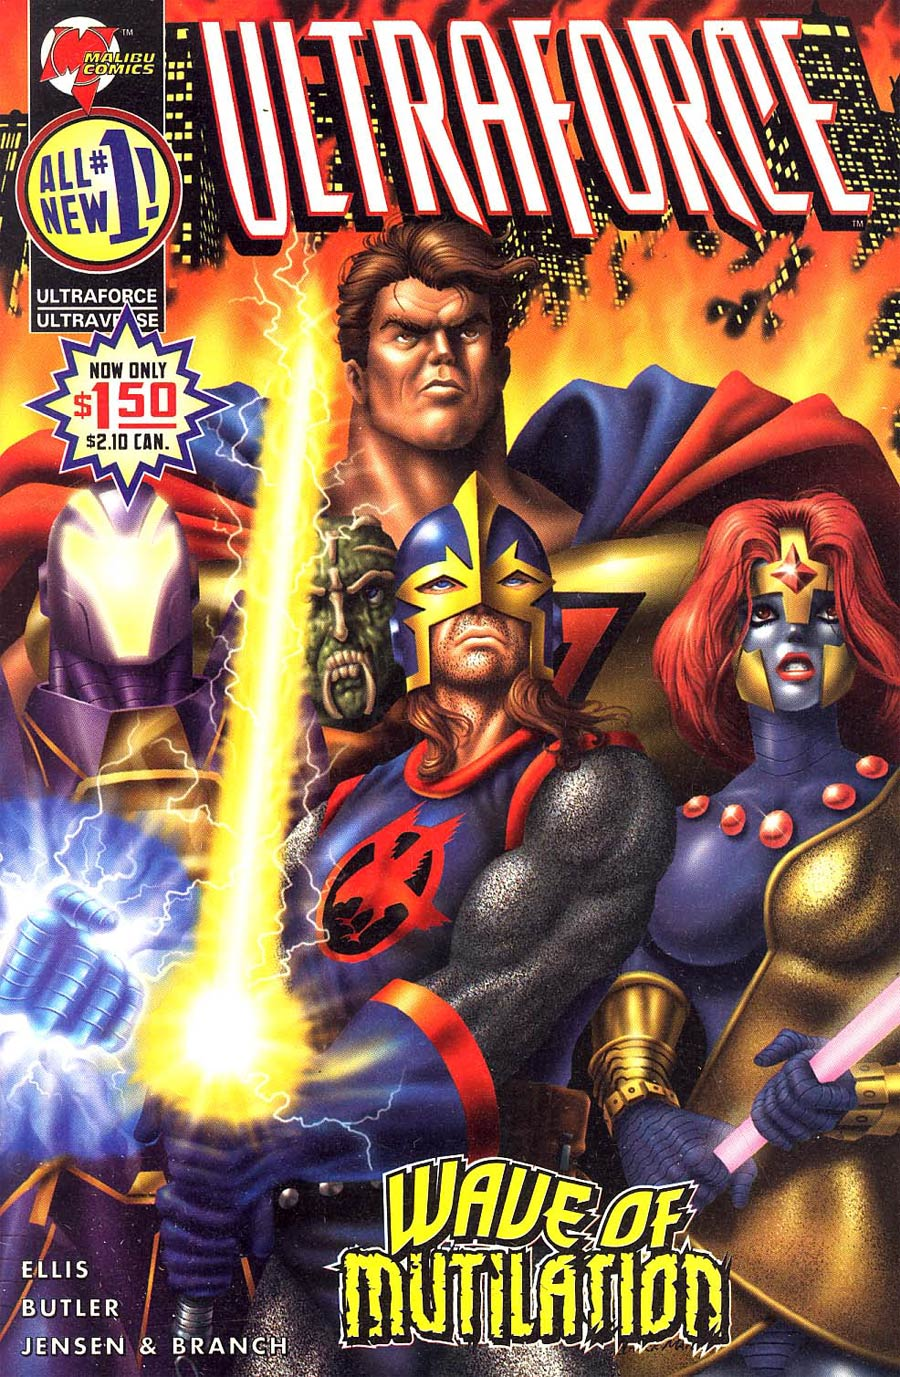 Ultraforce Vol 2 #1 Painted Cover